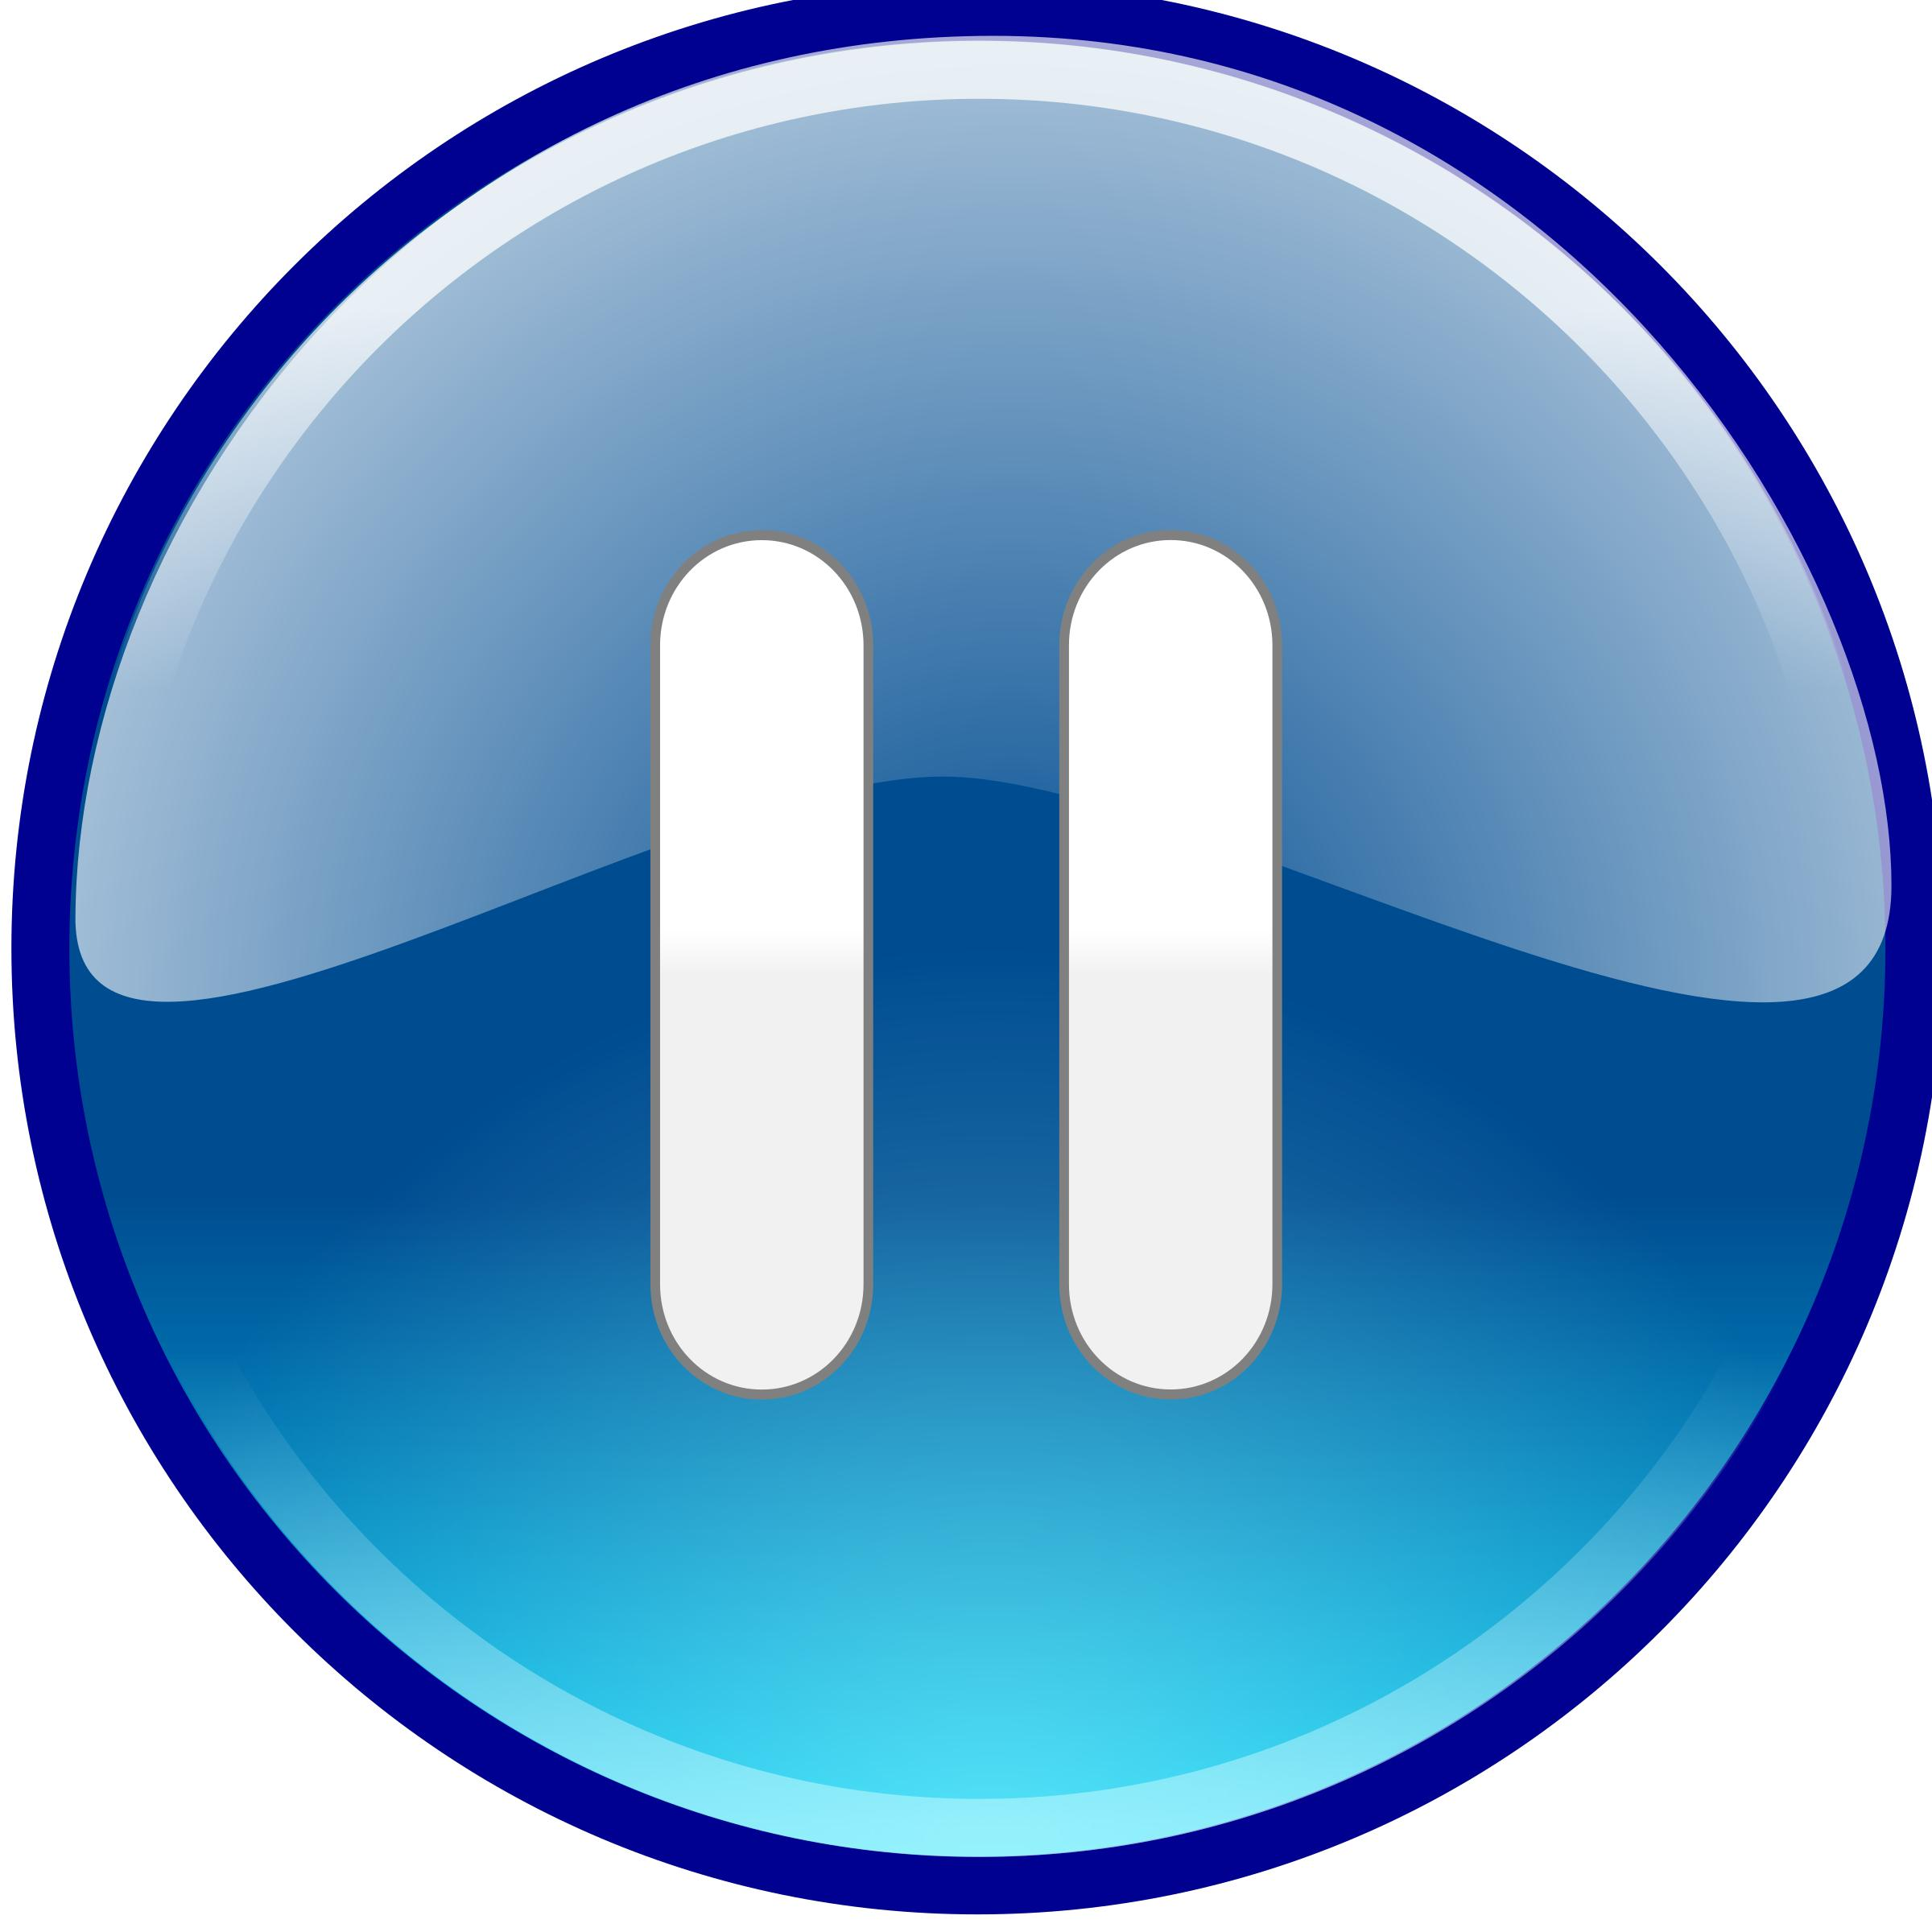 Windows Media Player Pause Button - Pause Button PNG